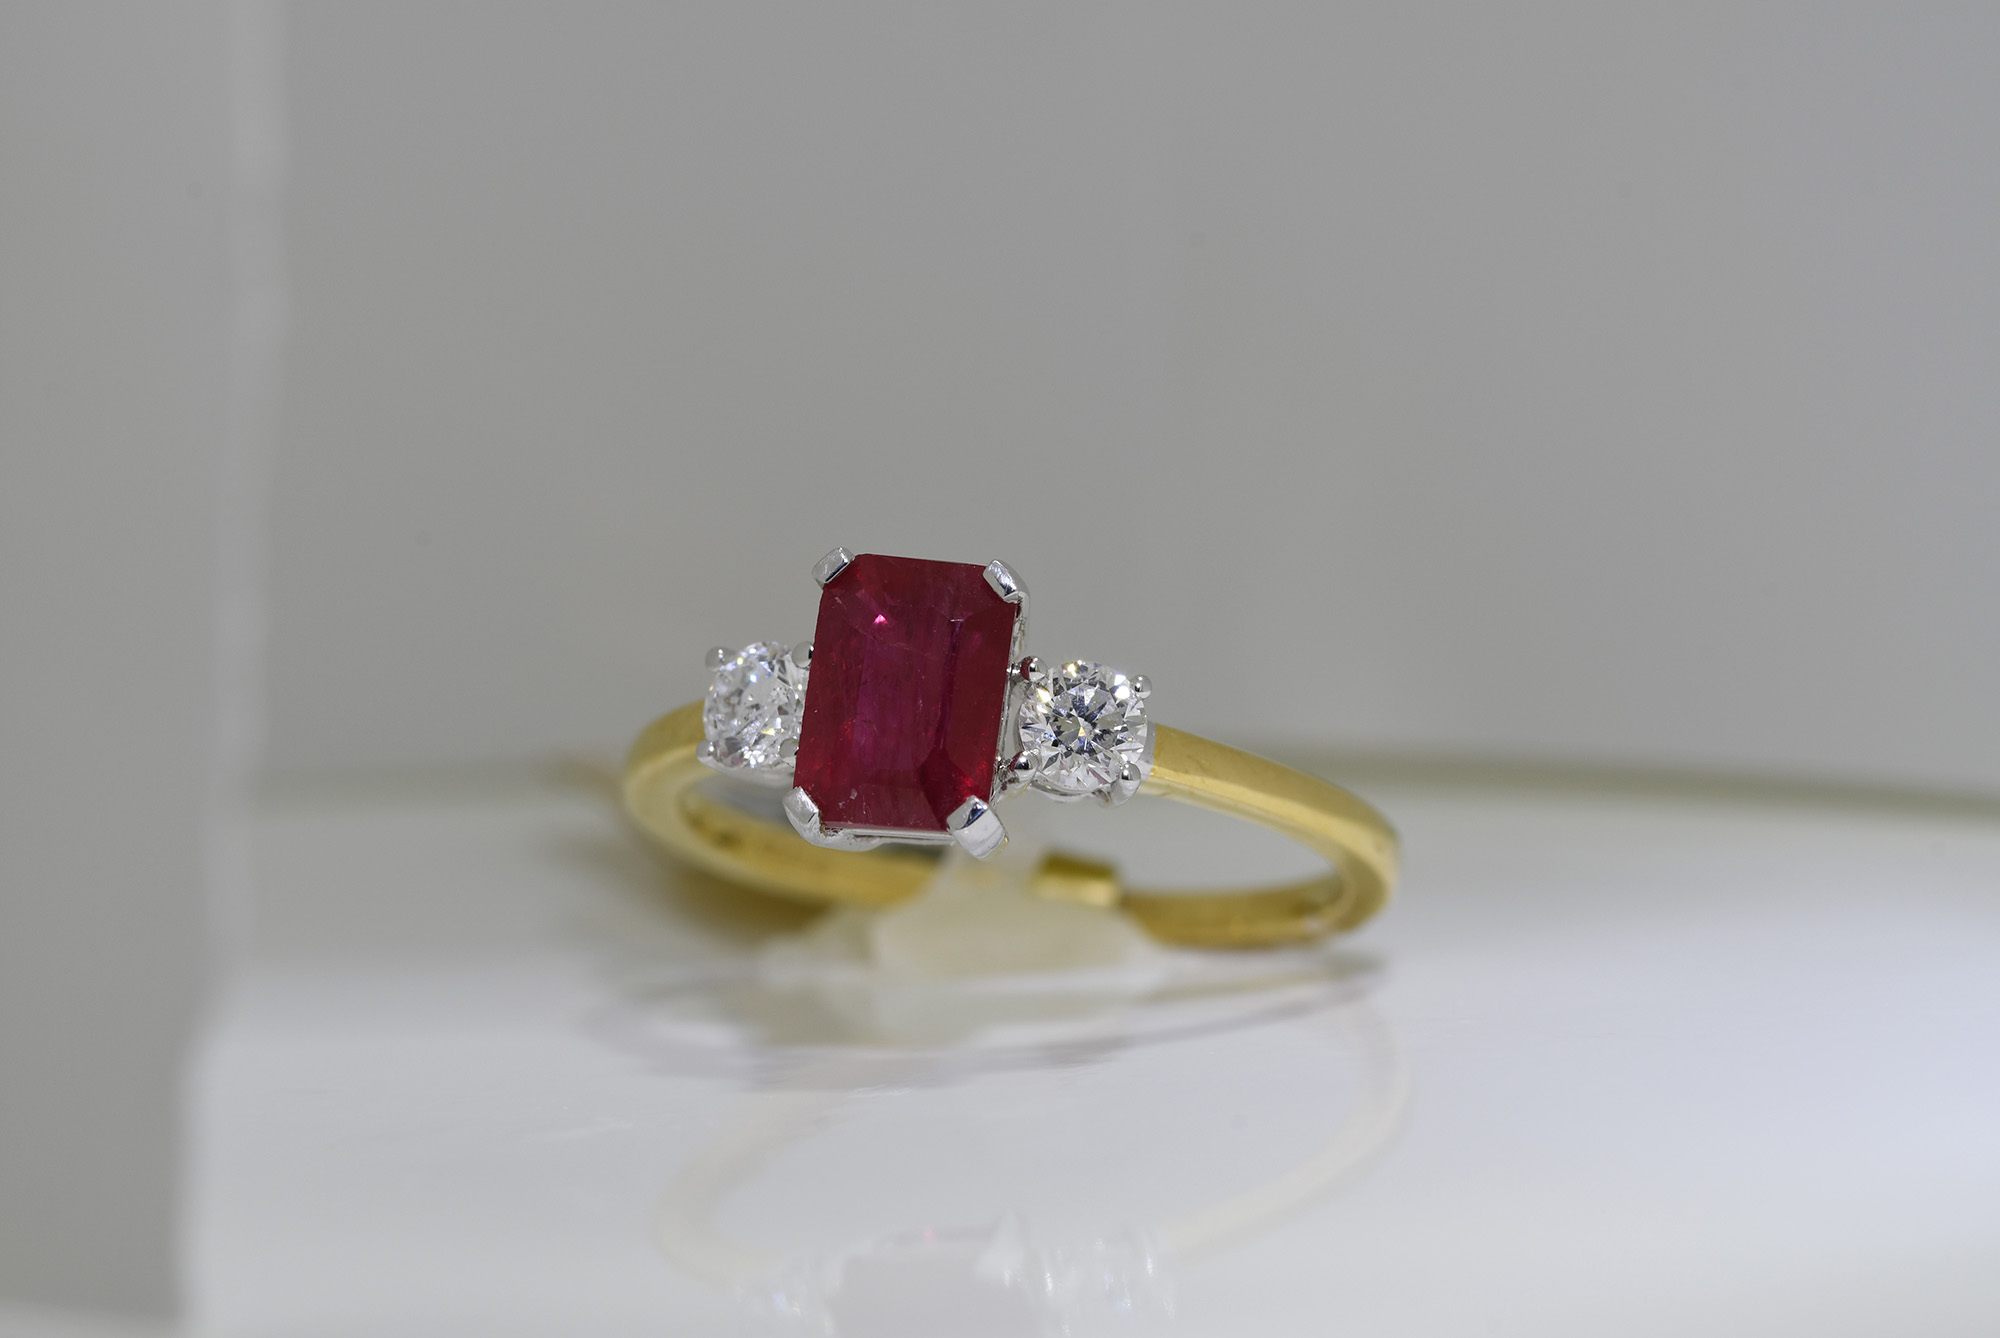 Ruby and Diamond Ring - Image 3 of 3